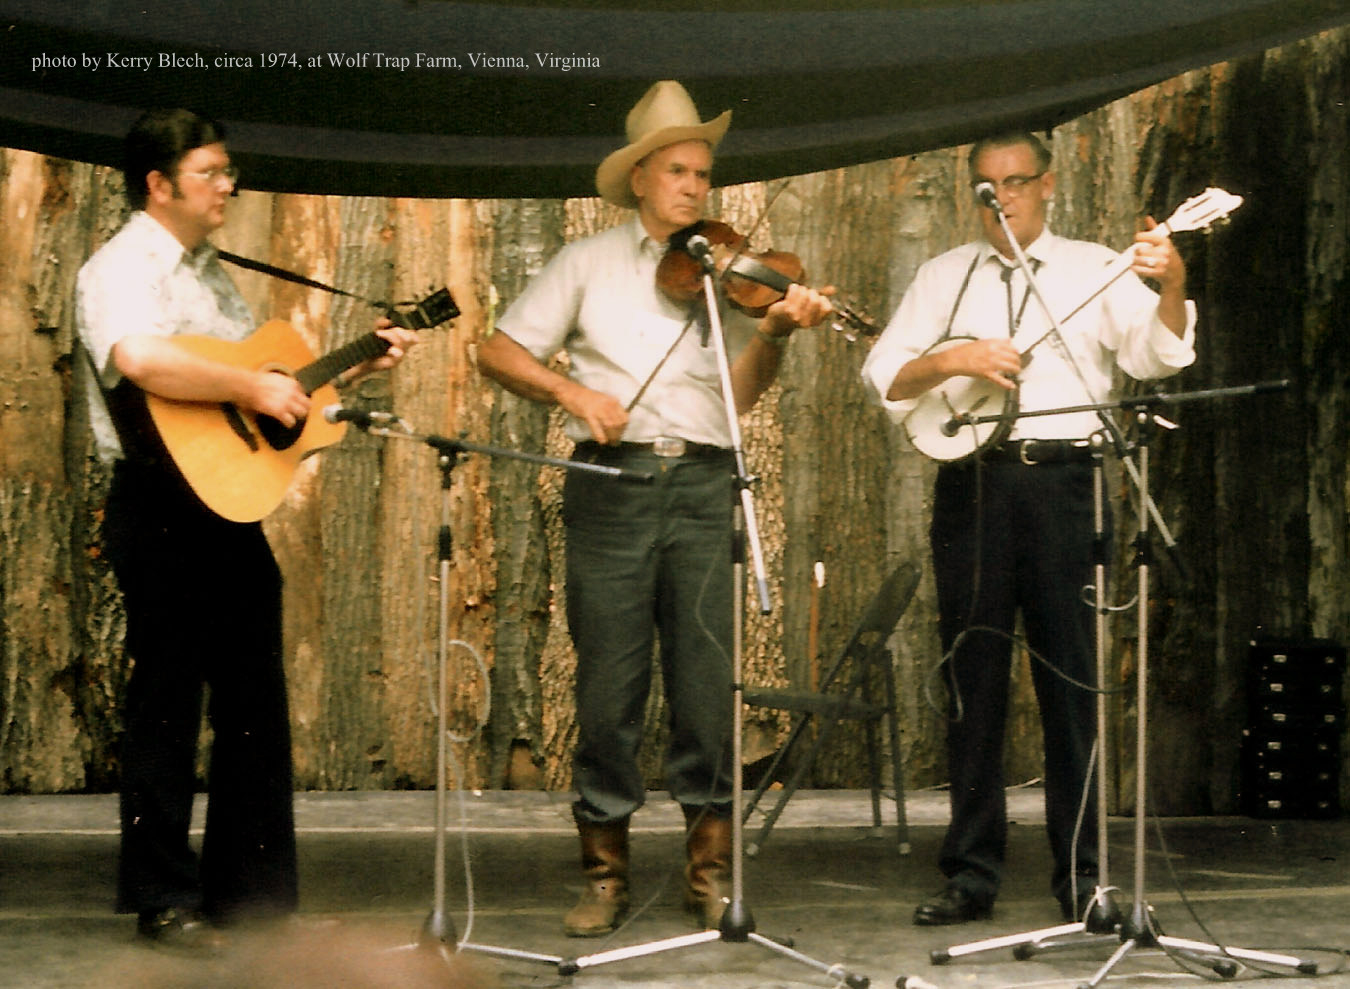 Caption: Bobby Patterson (left), Kyle Creed (center) and Fred Cockerham at Wolf Trap Farm Park, Vienna, VA.  c. 1974.  Patterson was an outstanding musician from the tradition-rich Galax, Virginia area, and was also dedicated to recording music of the region and m, Credit: Kerry Blech, used with permission